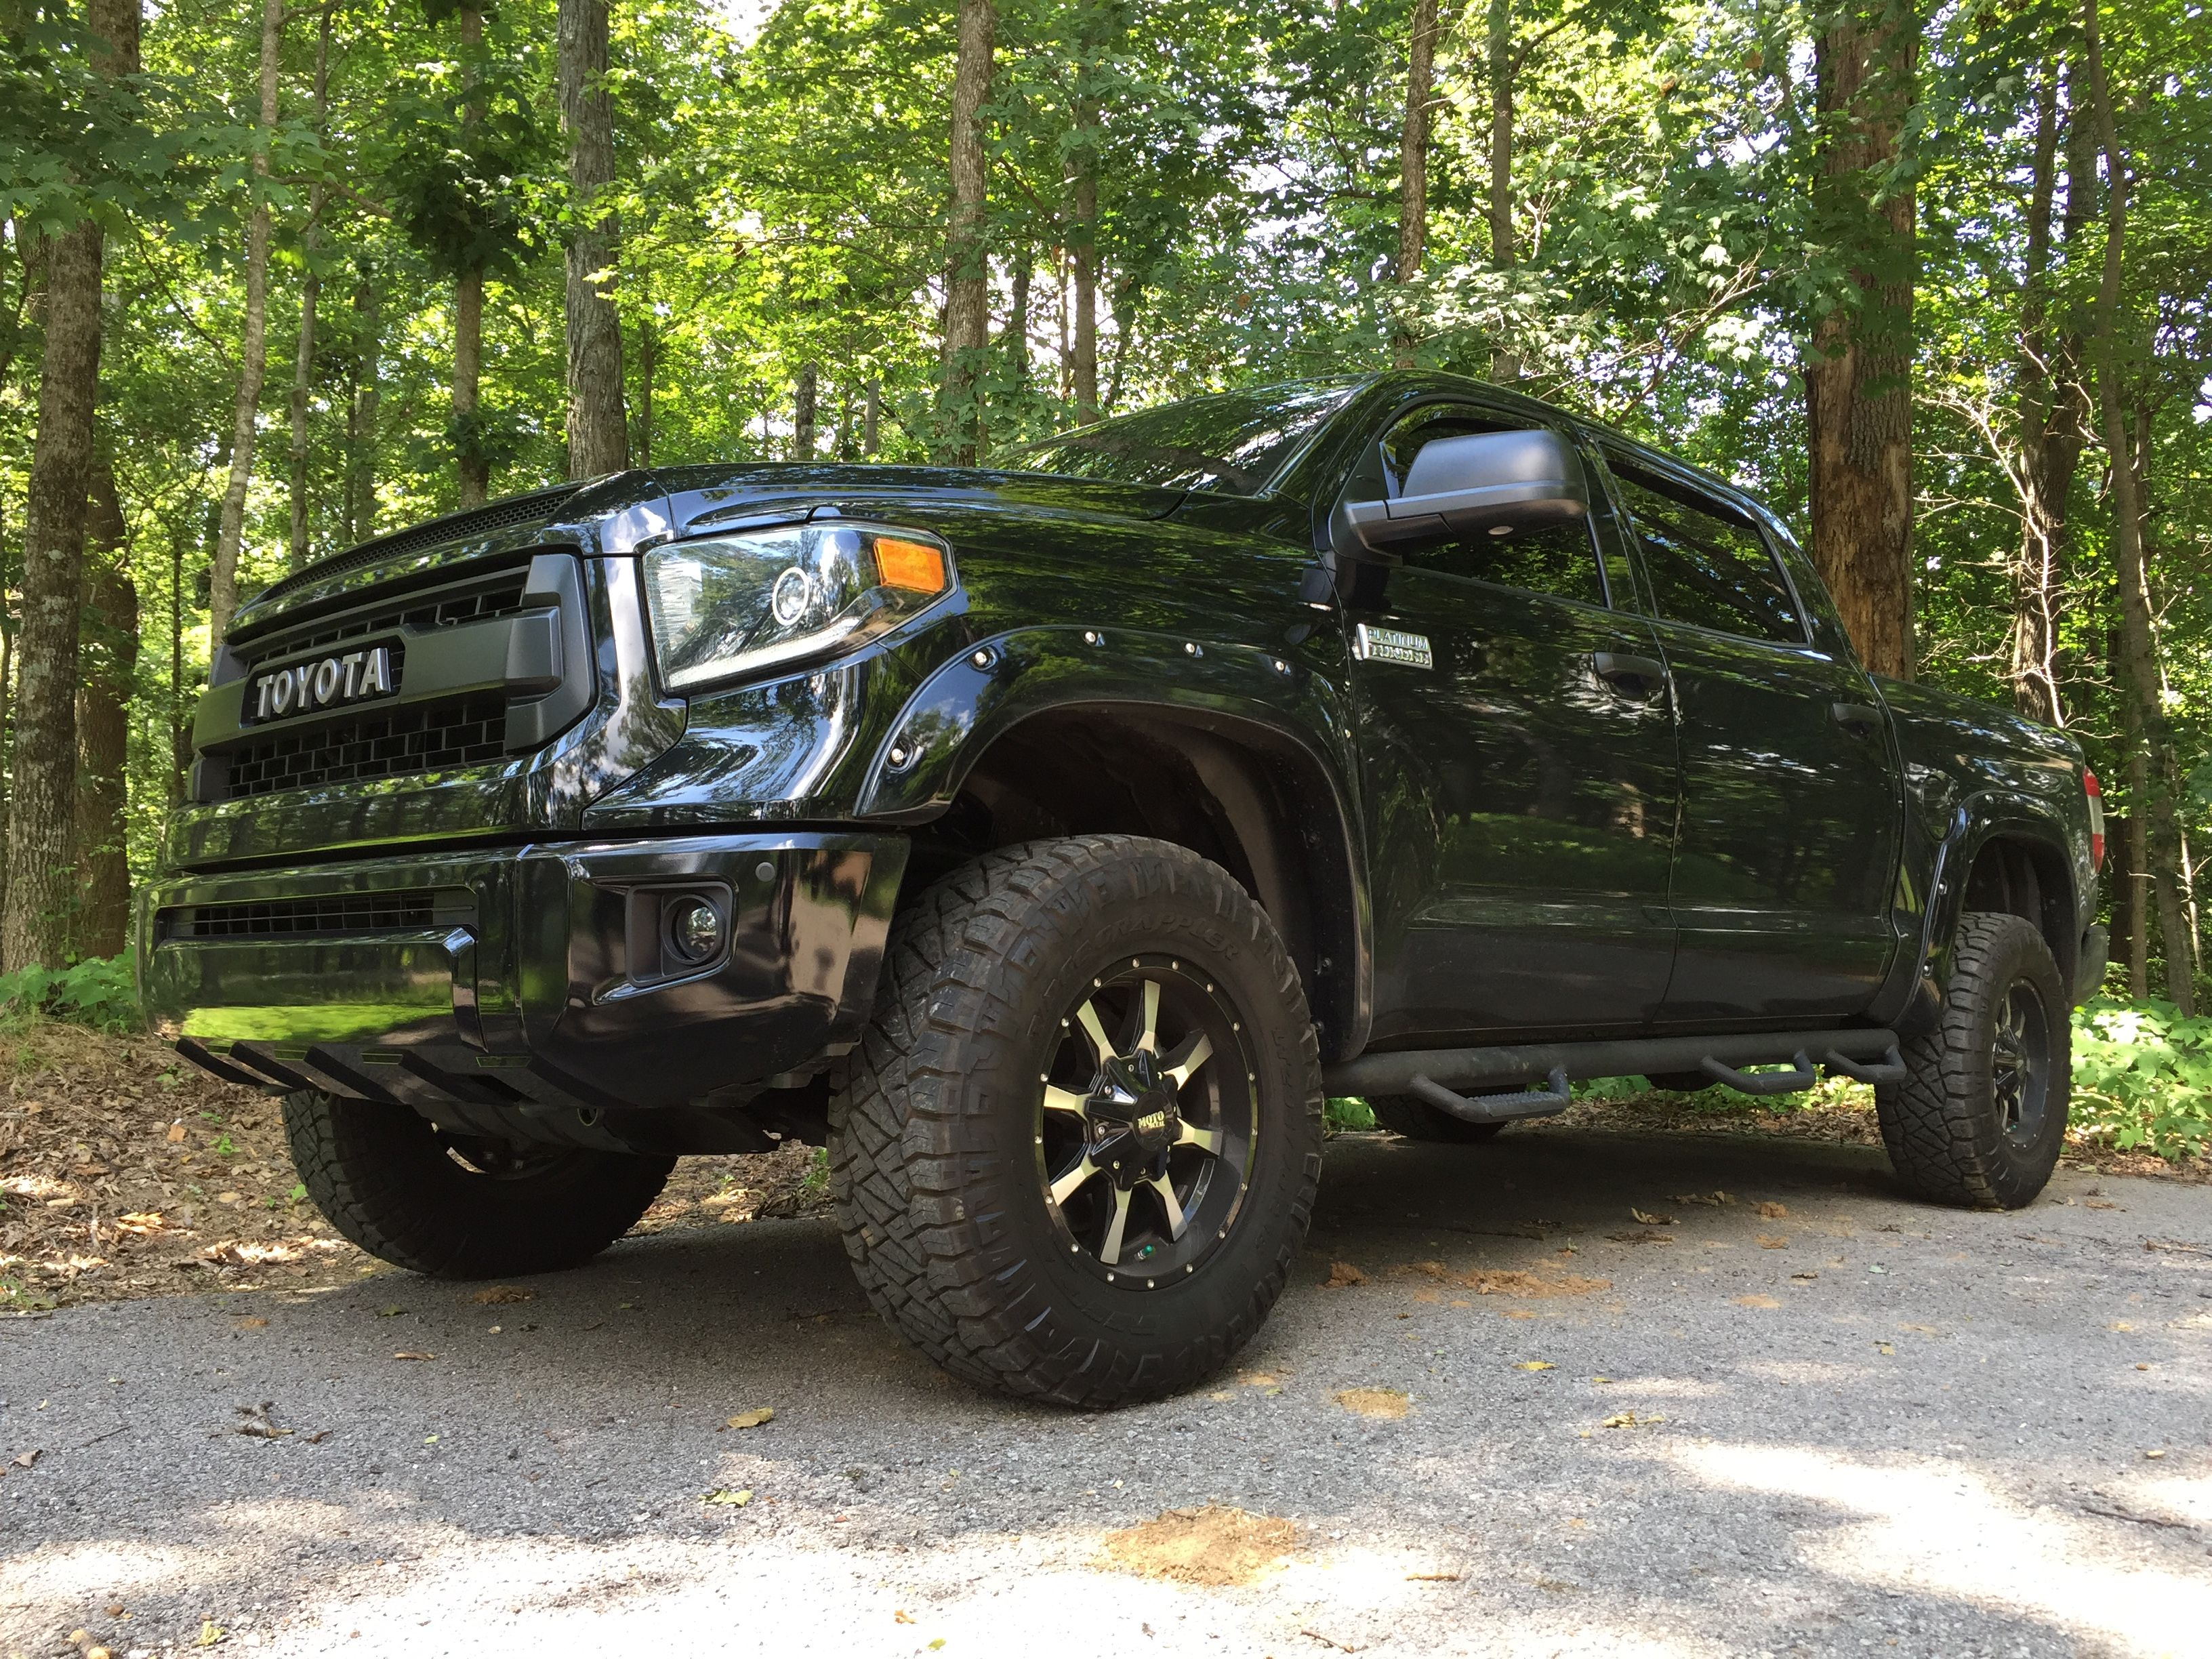 Pin by Cool Hand on Transportation in 2020 Toyota tundra